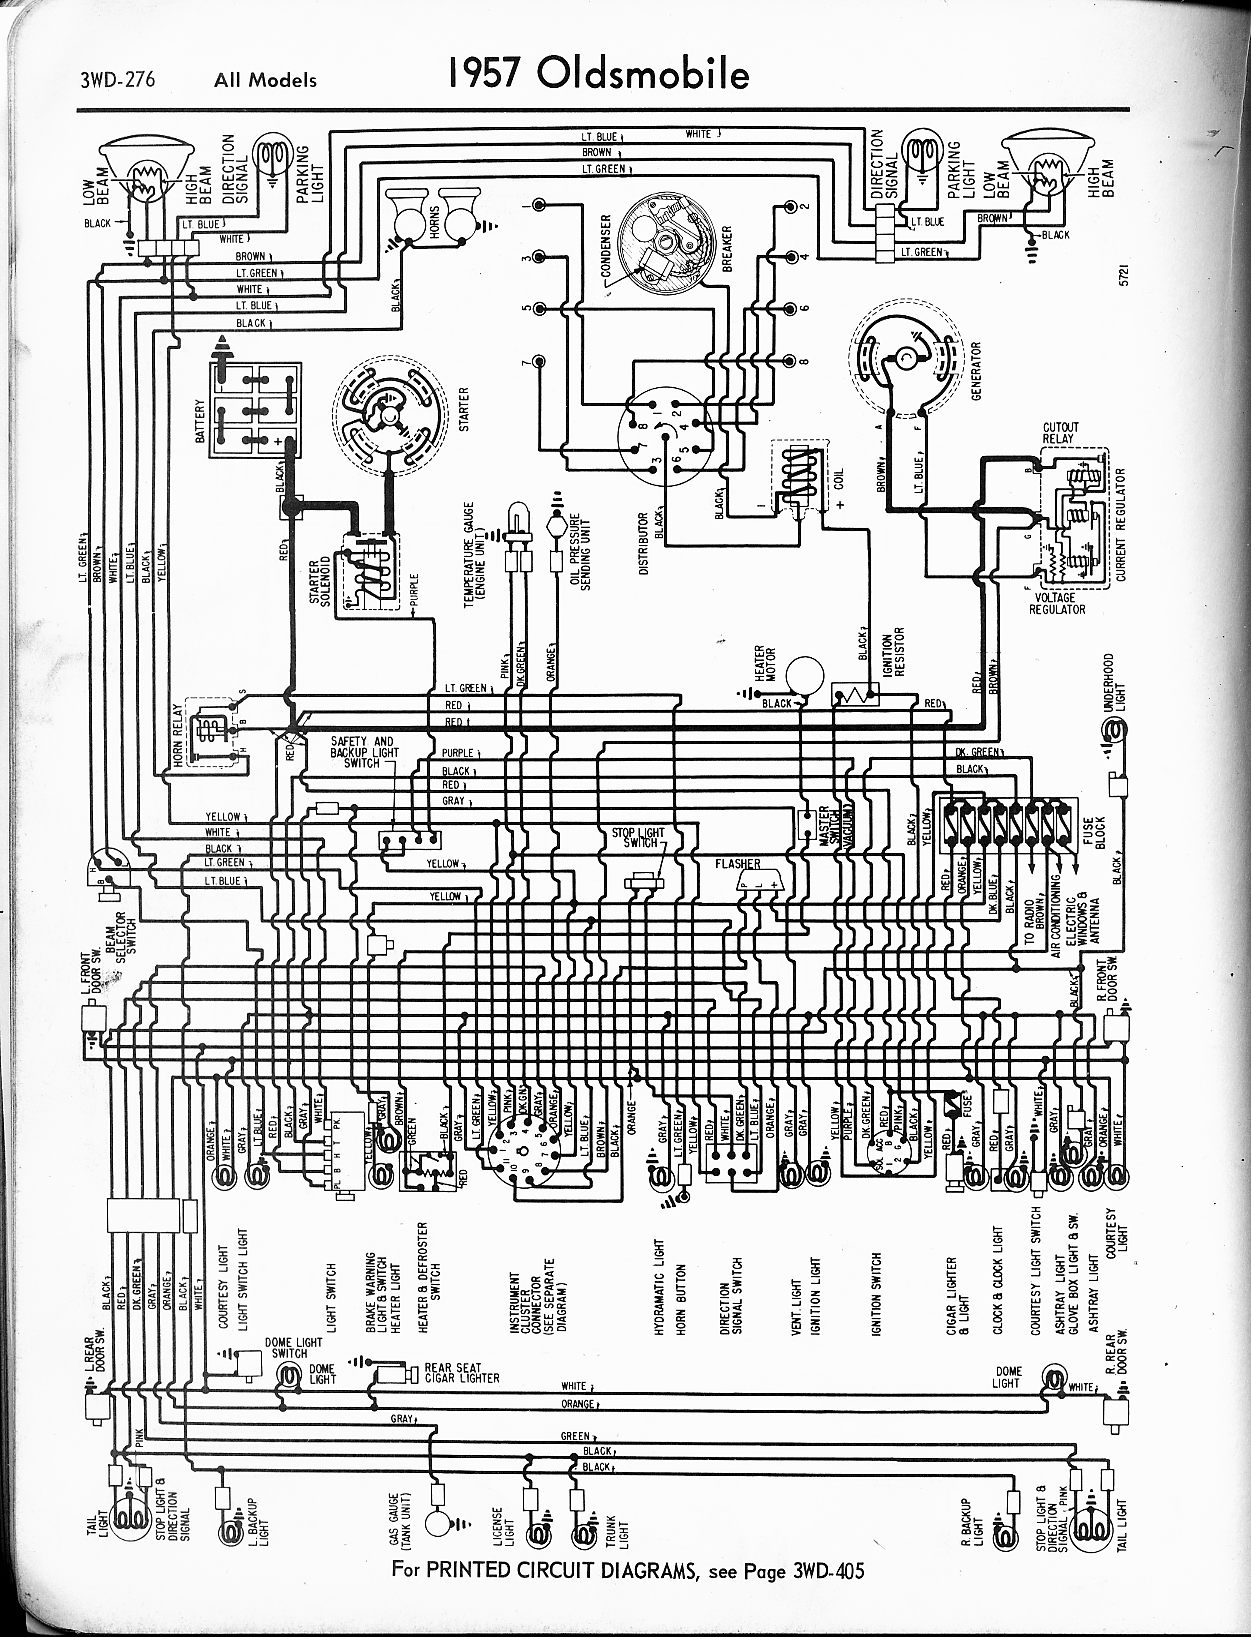 1956 Oldsmobile Wiring Diagram Data Electrical For 1955 Chevrolet Truck Olds 88 Guide And Troubleshooting Of Pontiac